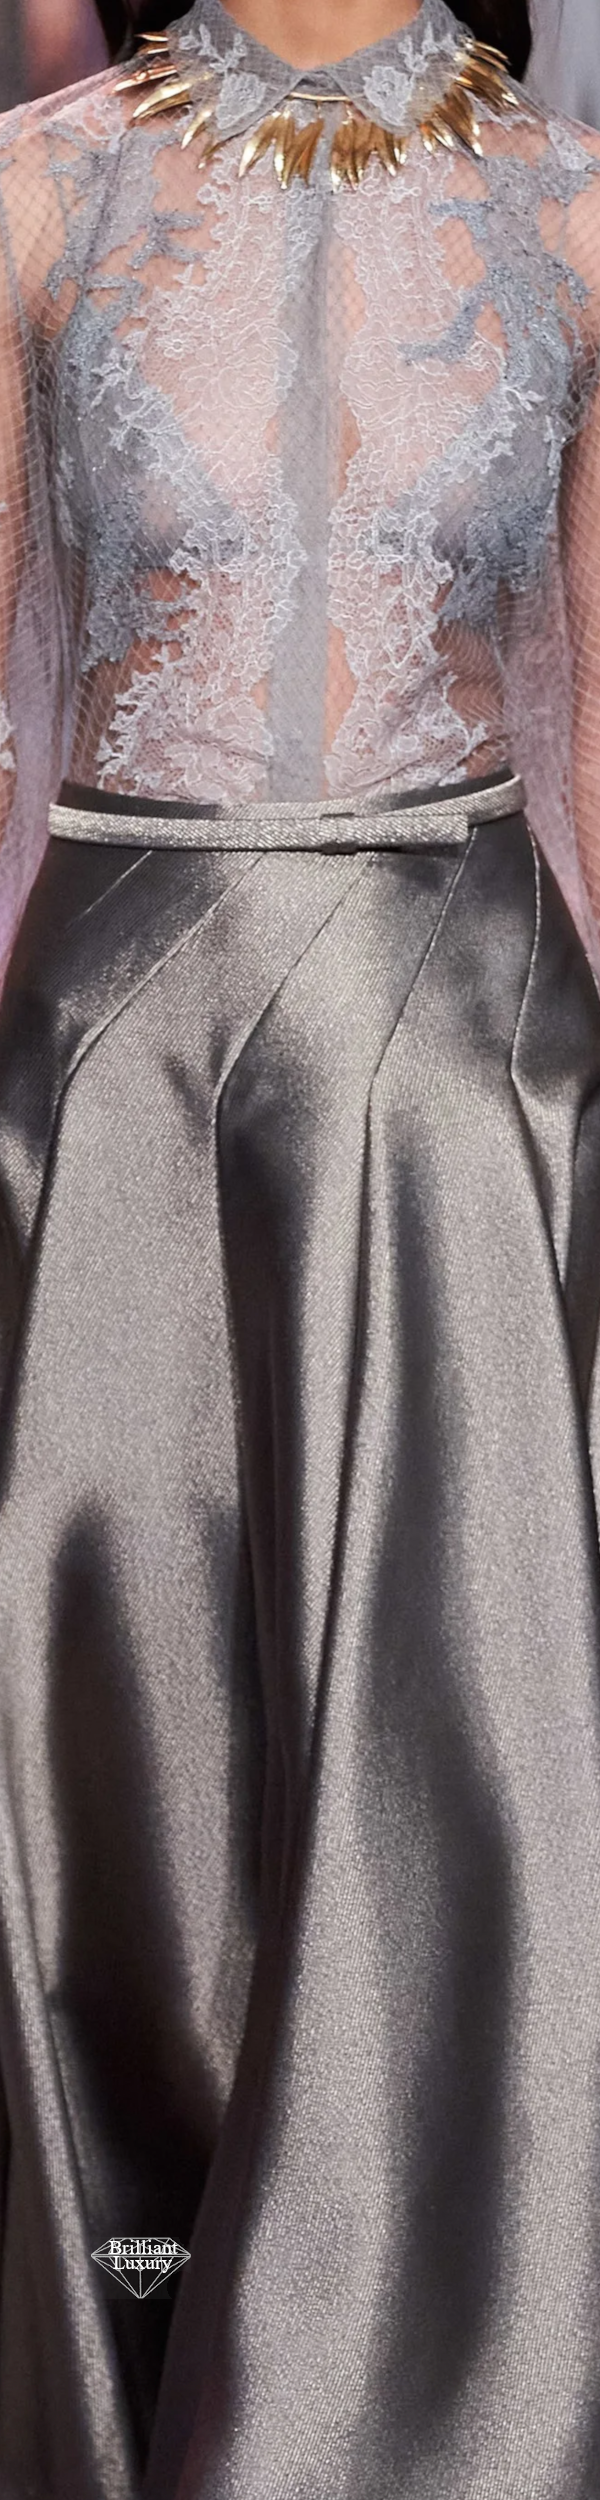 Dior Grey Satin Couture Gown Spring 2020 #fashion